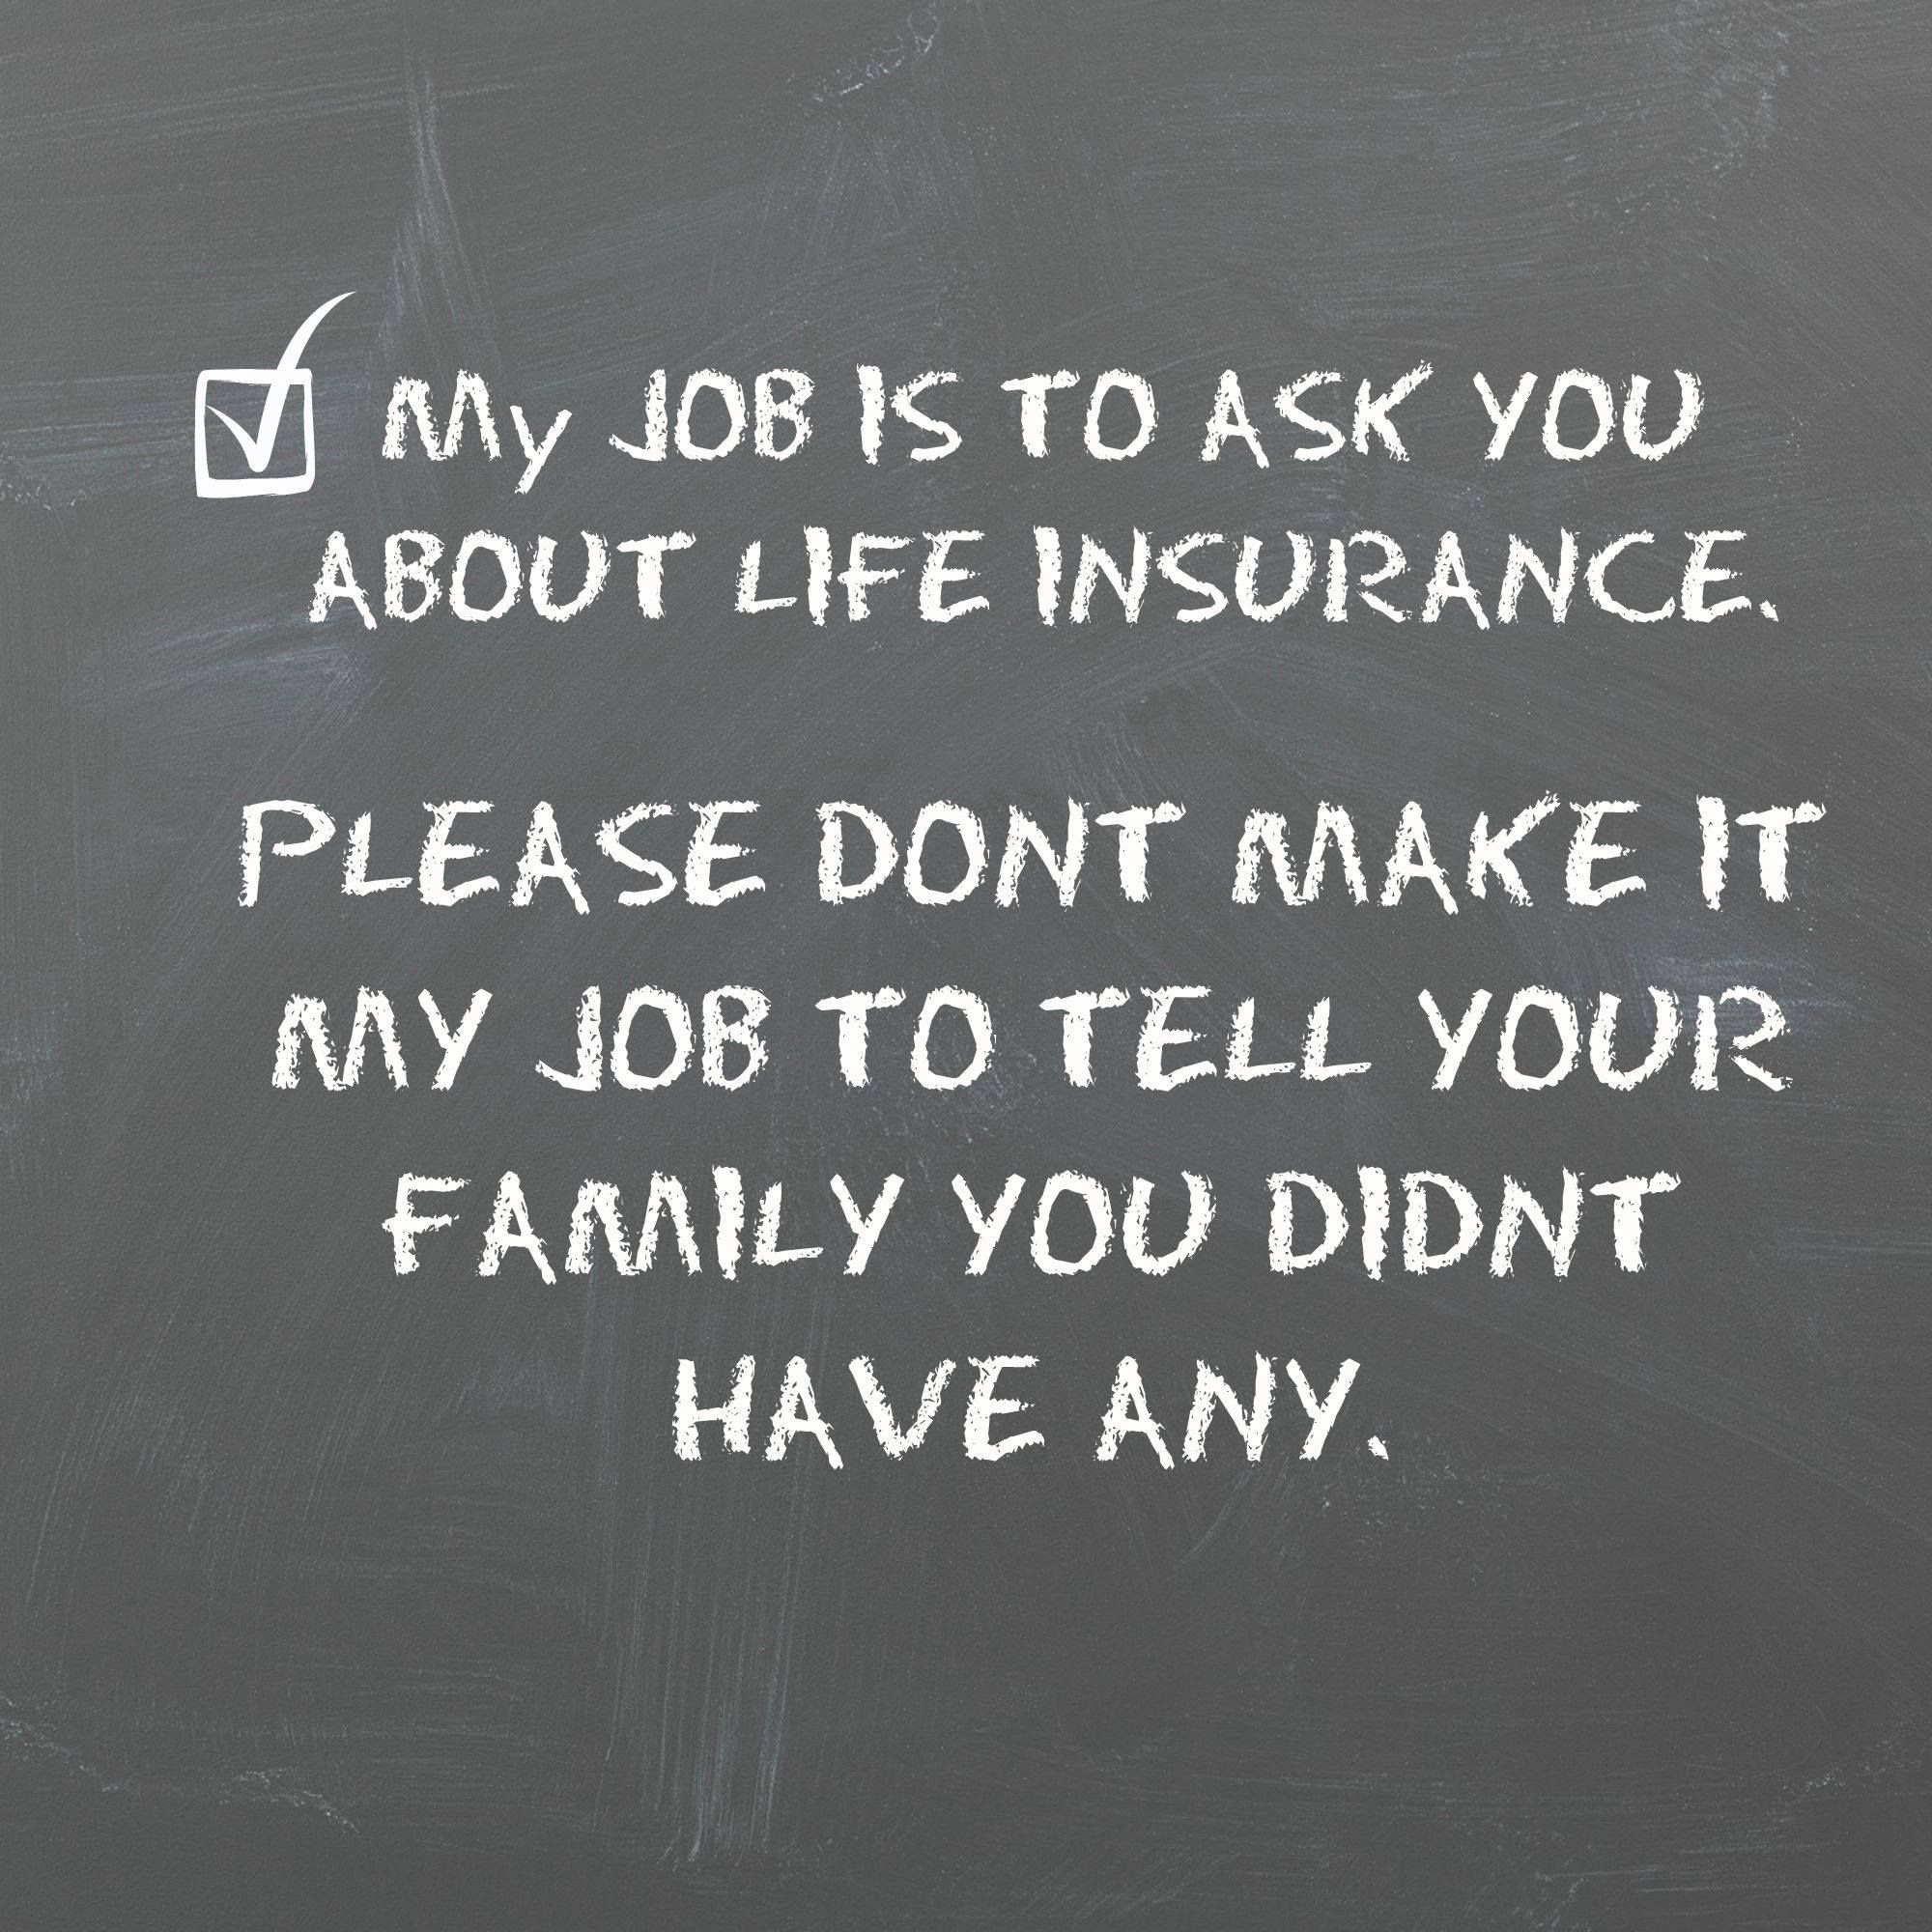 Life Insurance Quote Awesome Call Us For Any #lifeinsurance Questions That You Have At 330225